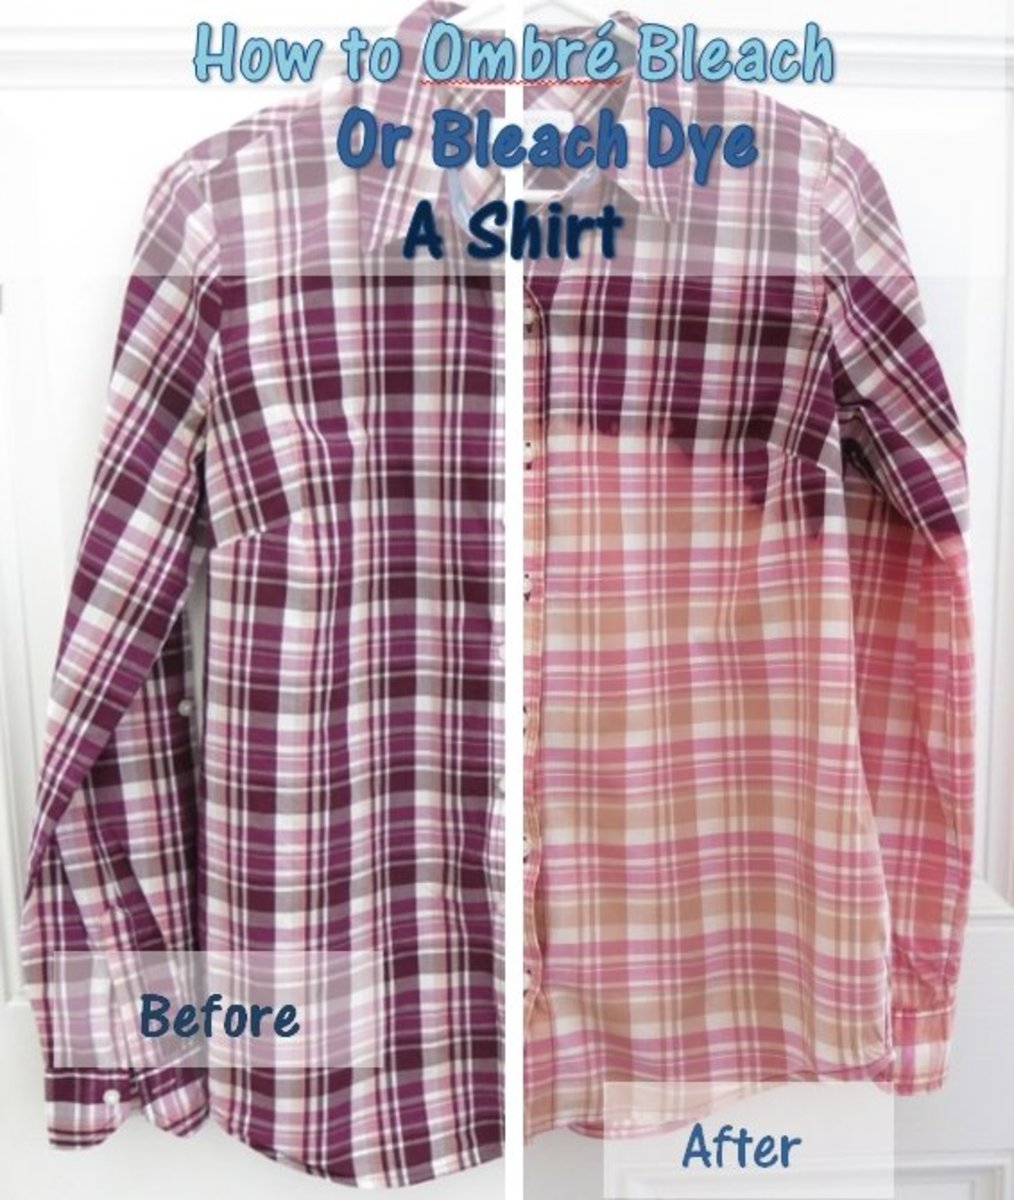 DIY Fashion: How to Ombré Bleach or Bleach Dye a Shirt